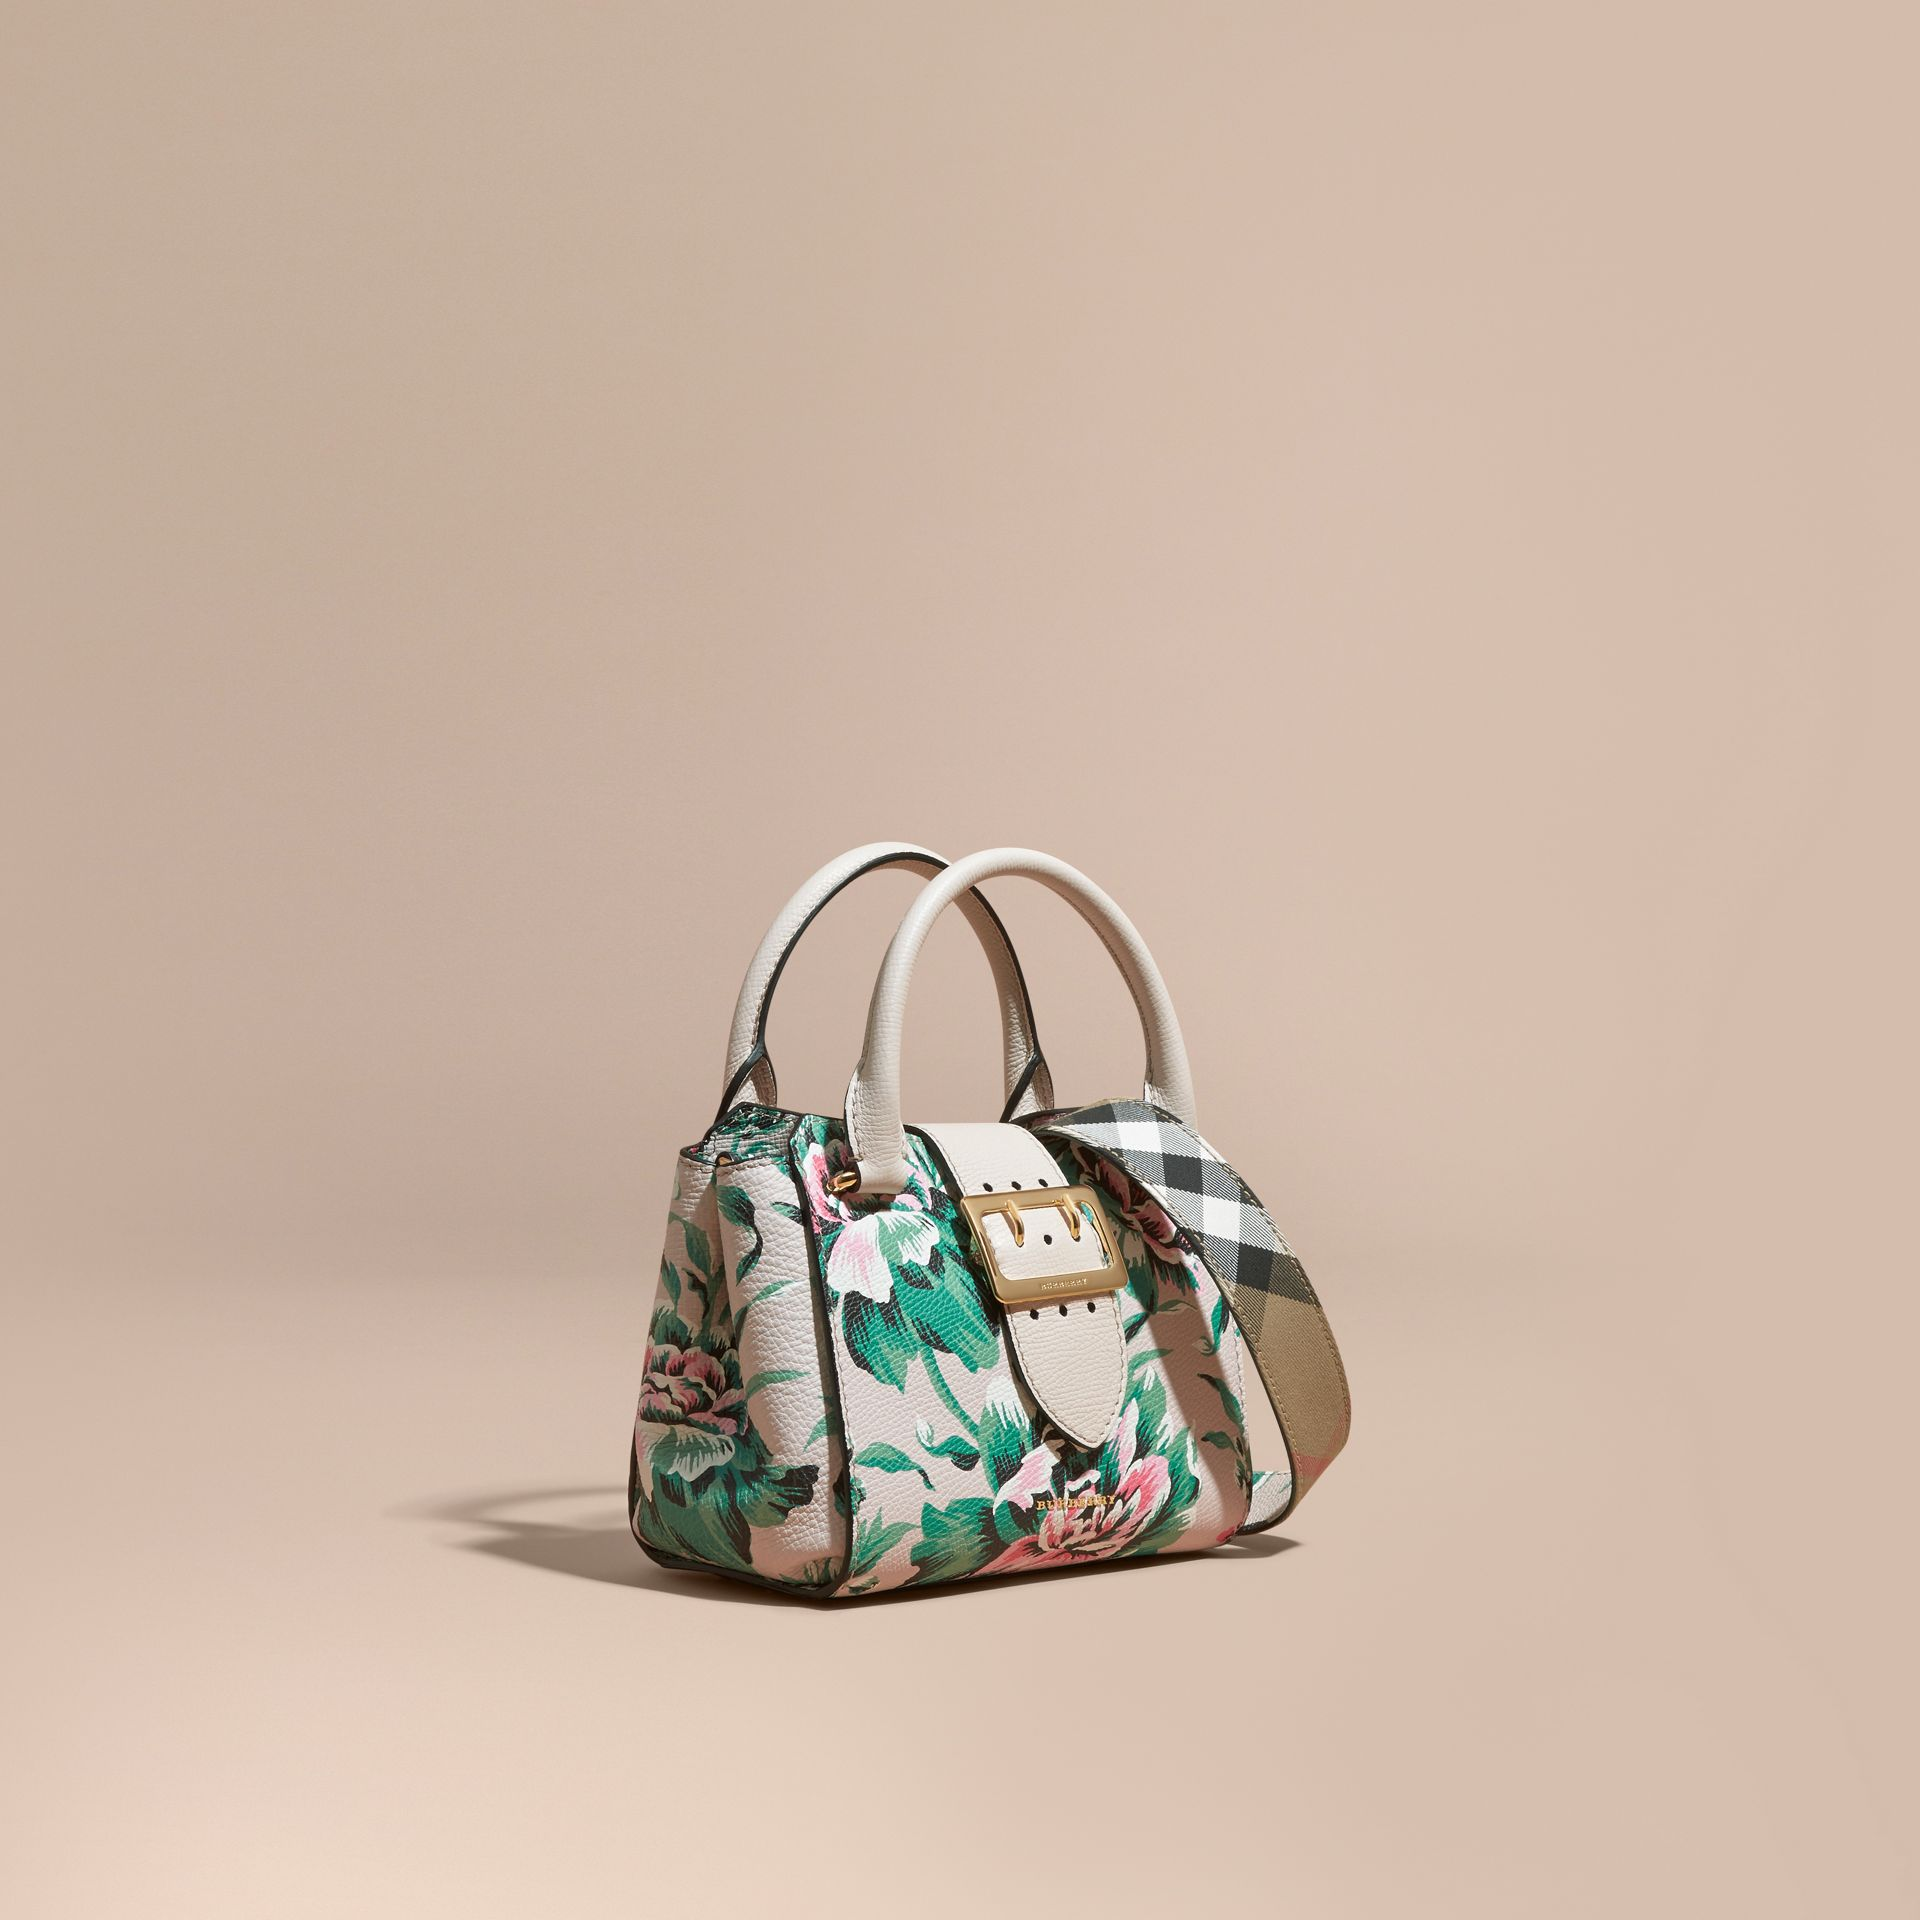 The Small Buckle Tote in Peony Rose Print Leather in Natural/emerald Green - gallery image 1